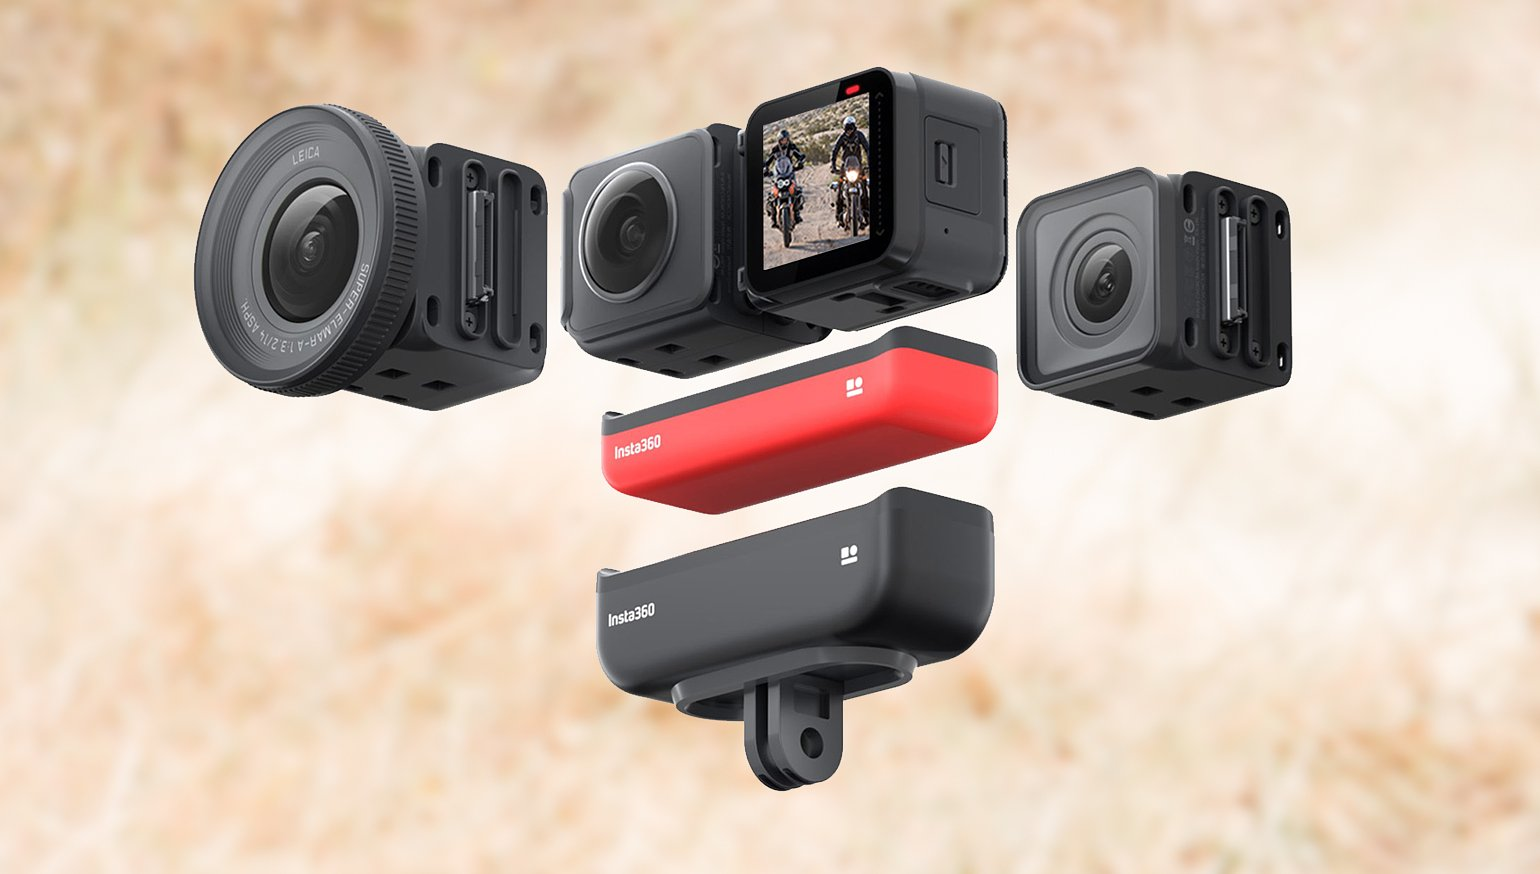 The features and must-haves of motorcycle action cameras